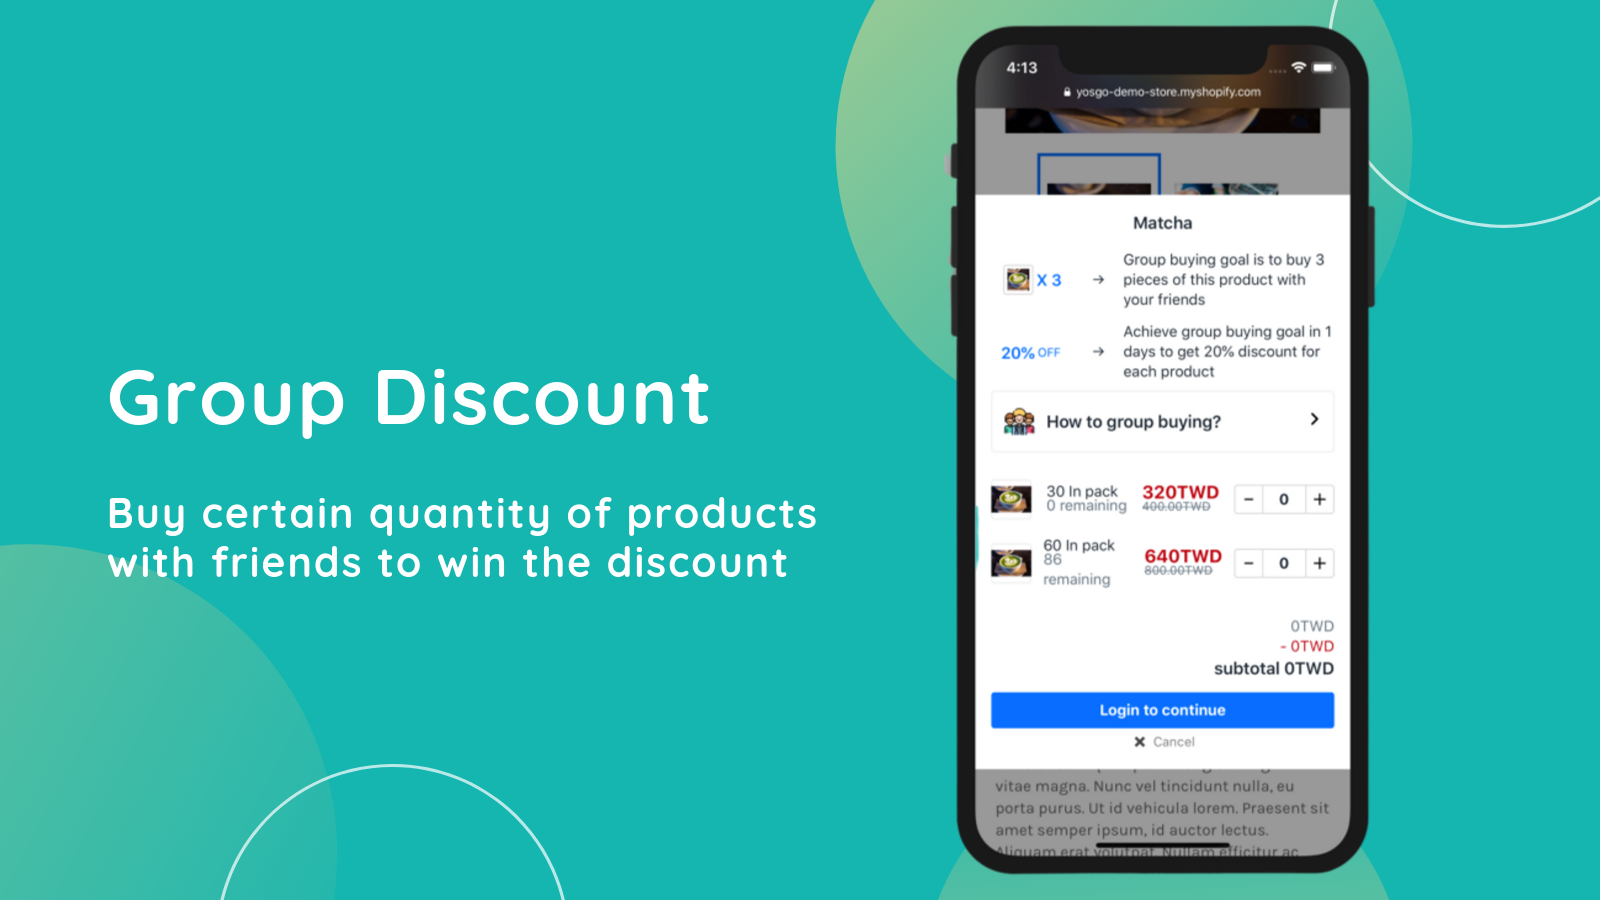 Buy enough products with friends to win the discoun